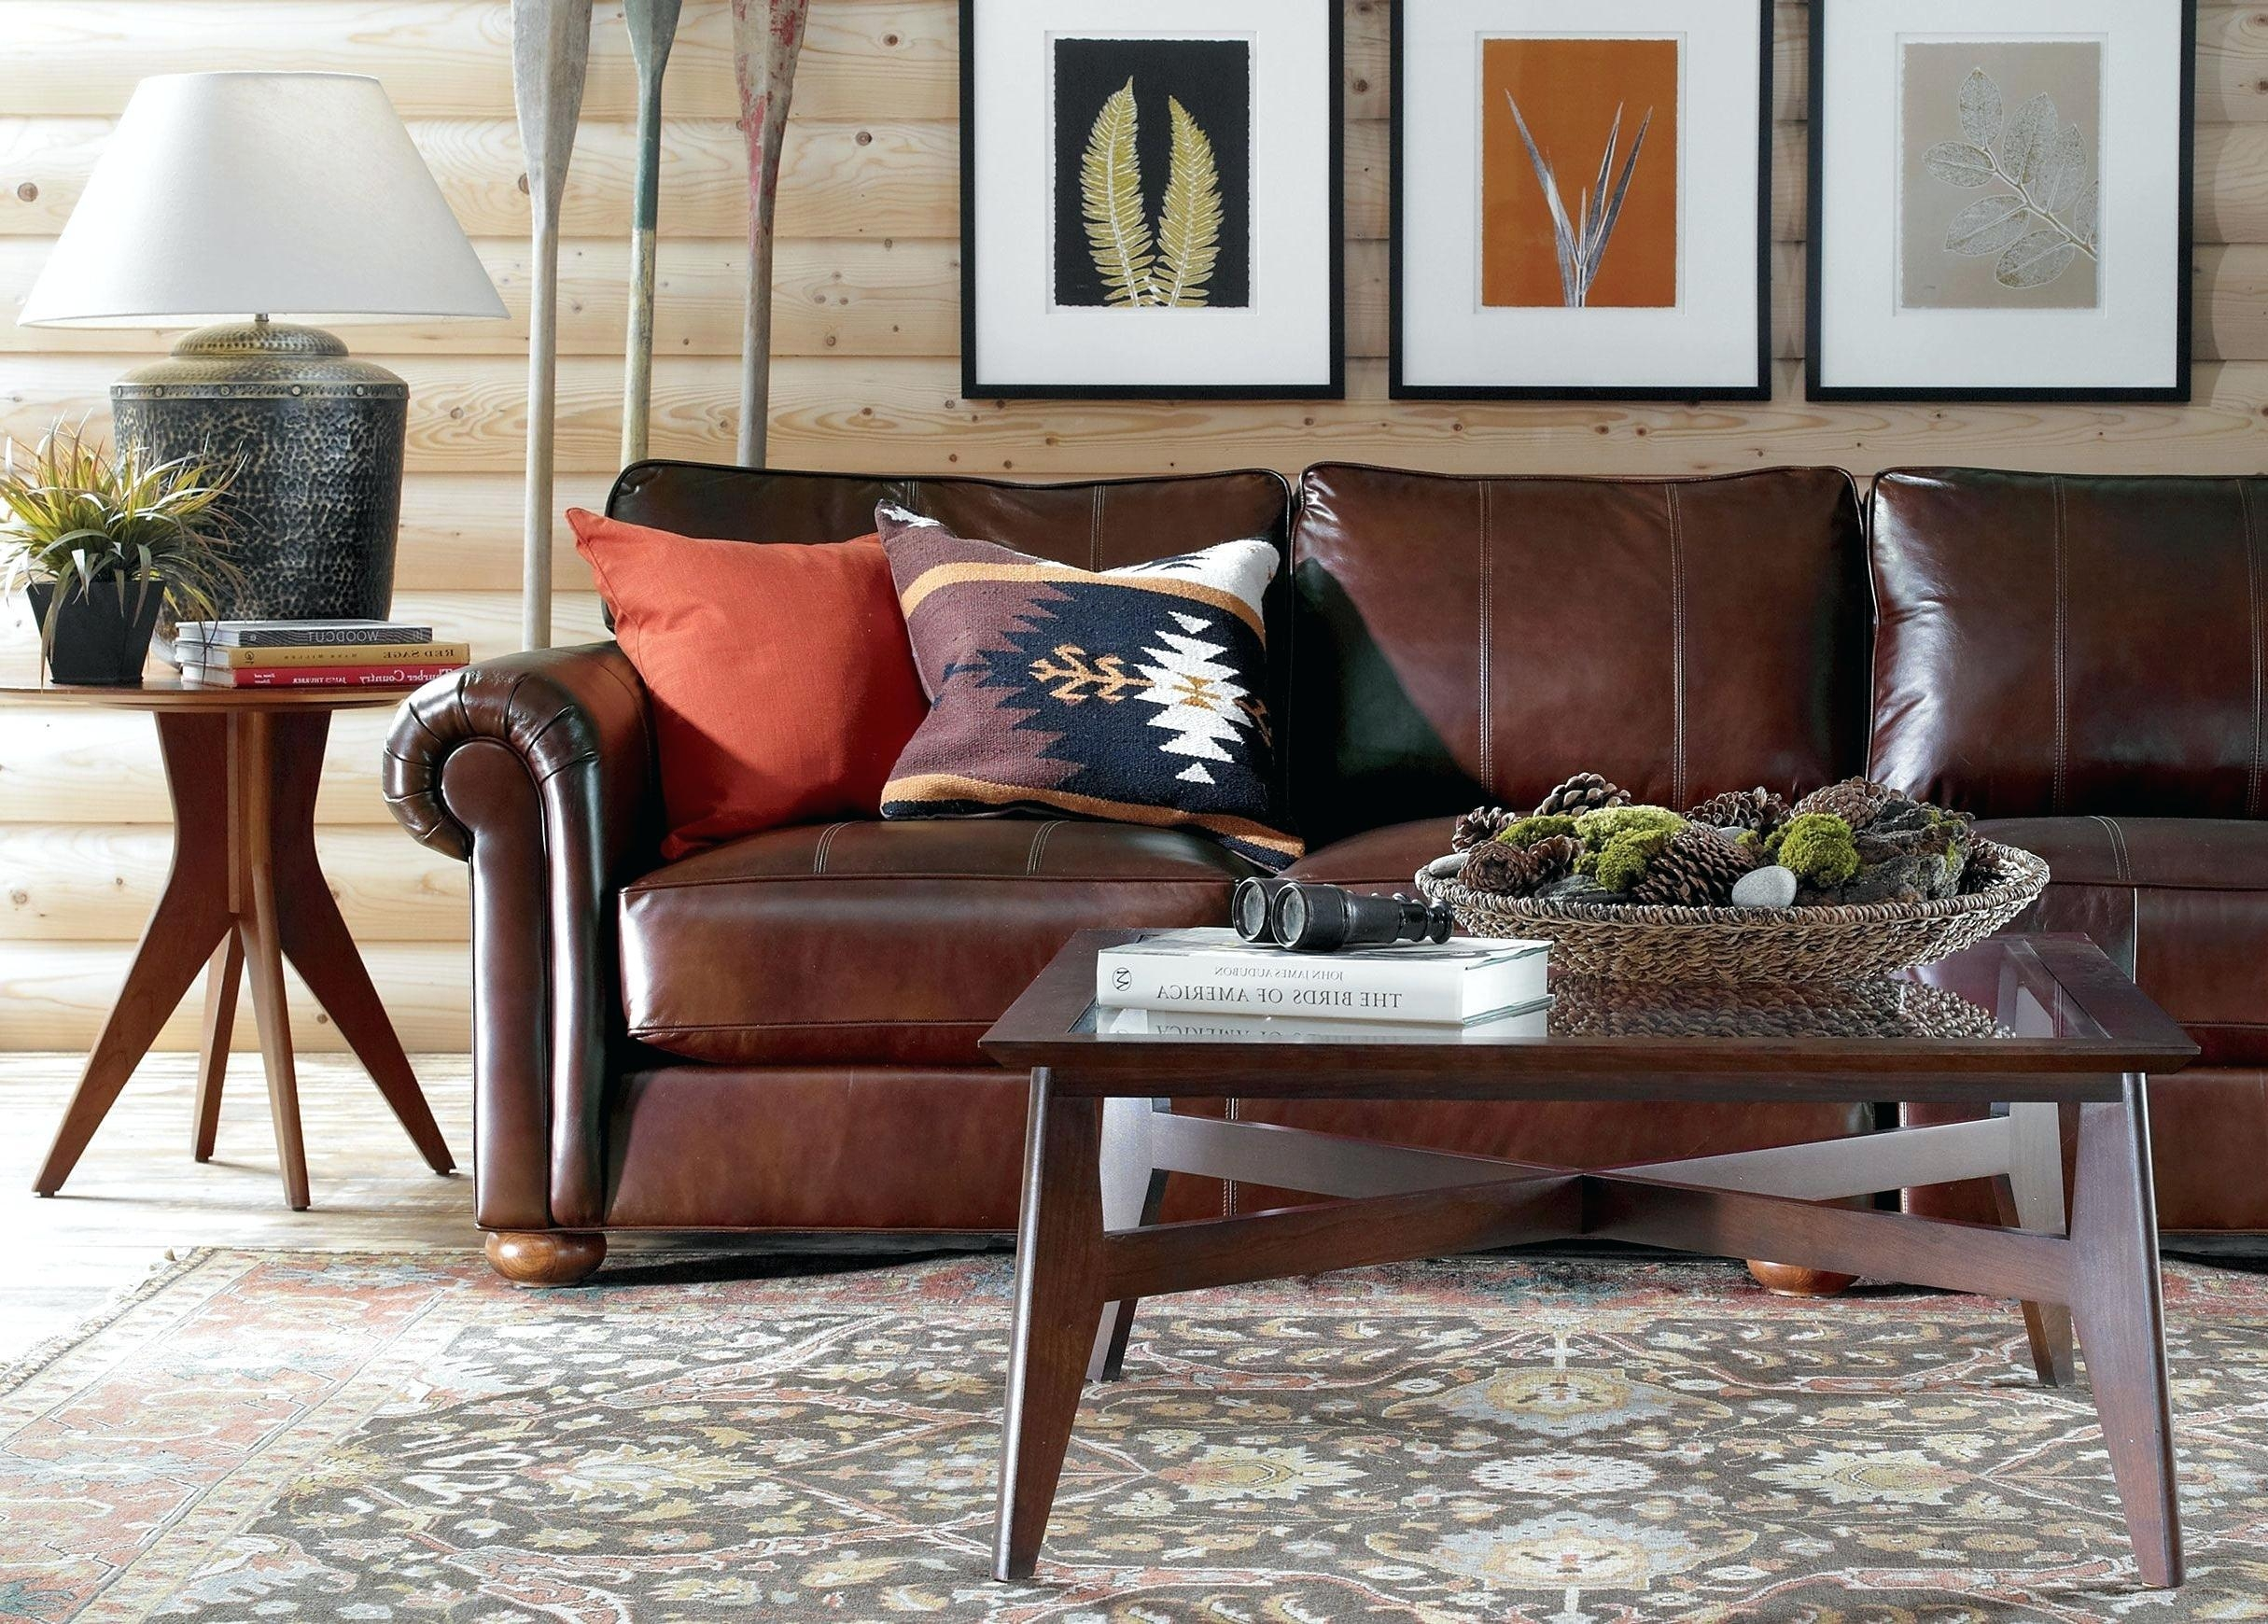 Arhaus Leather Sofa Ethan Allen Brown Loose Back Pillows And Seat Pertaining To Arhaus Leather Sofas (Image 9 of 20)